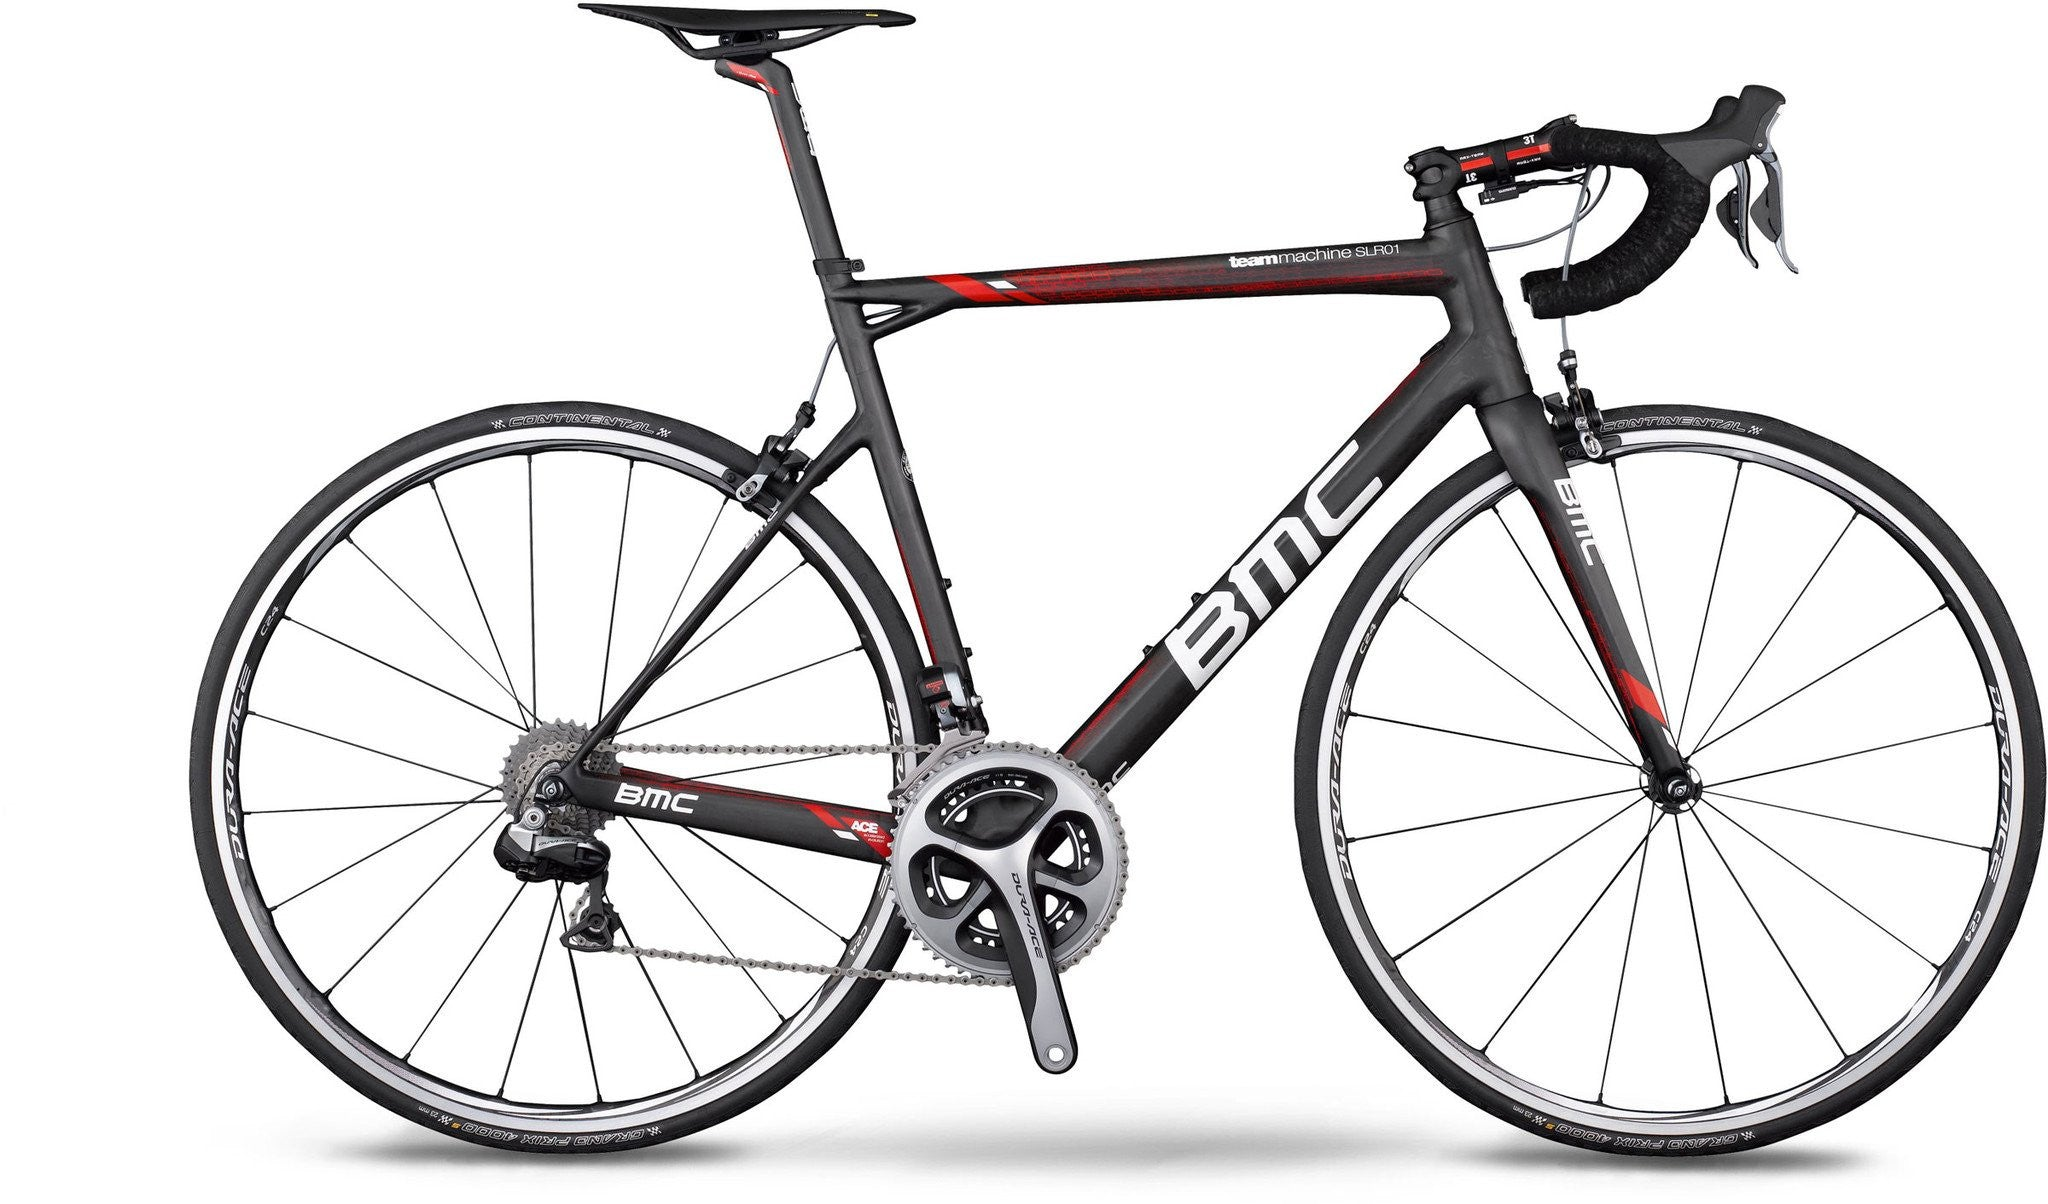 2014 BMC Team Machine SLR01 Dura Ace Di2 11 Speed Road Bike - Racer Sportif